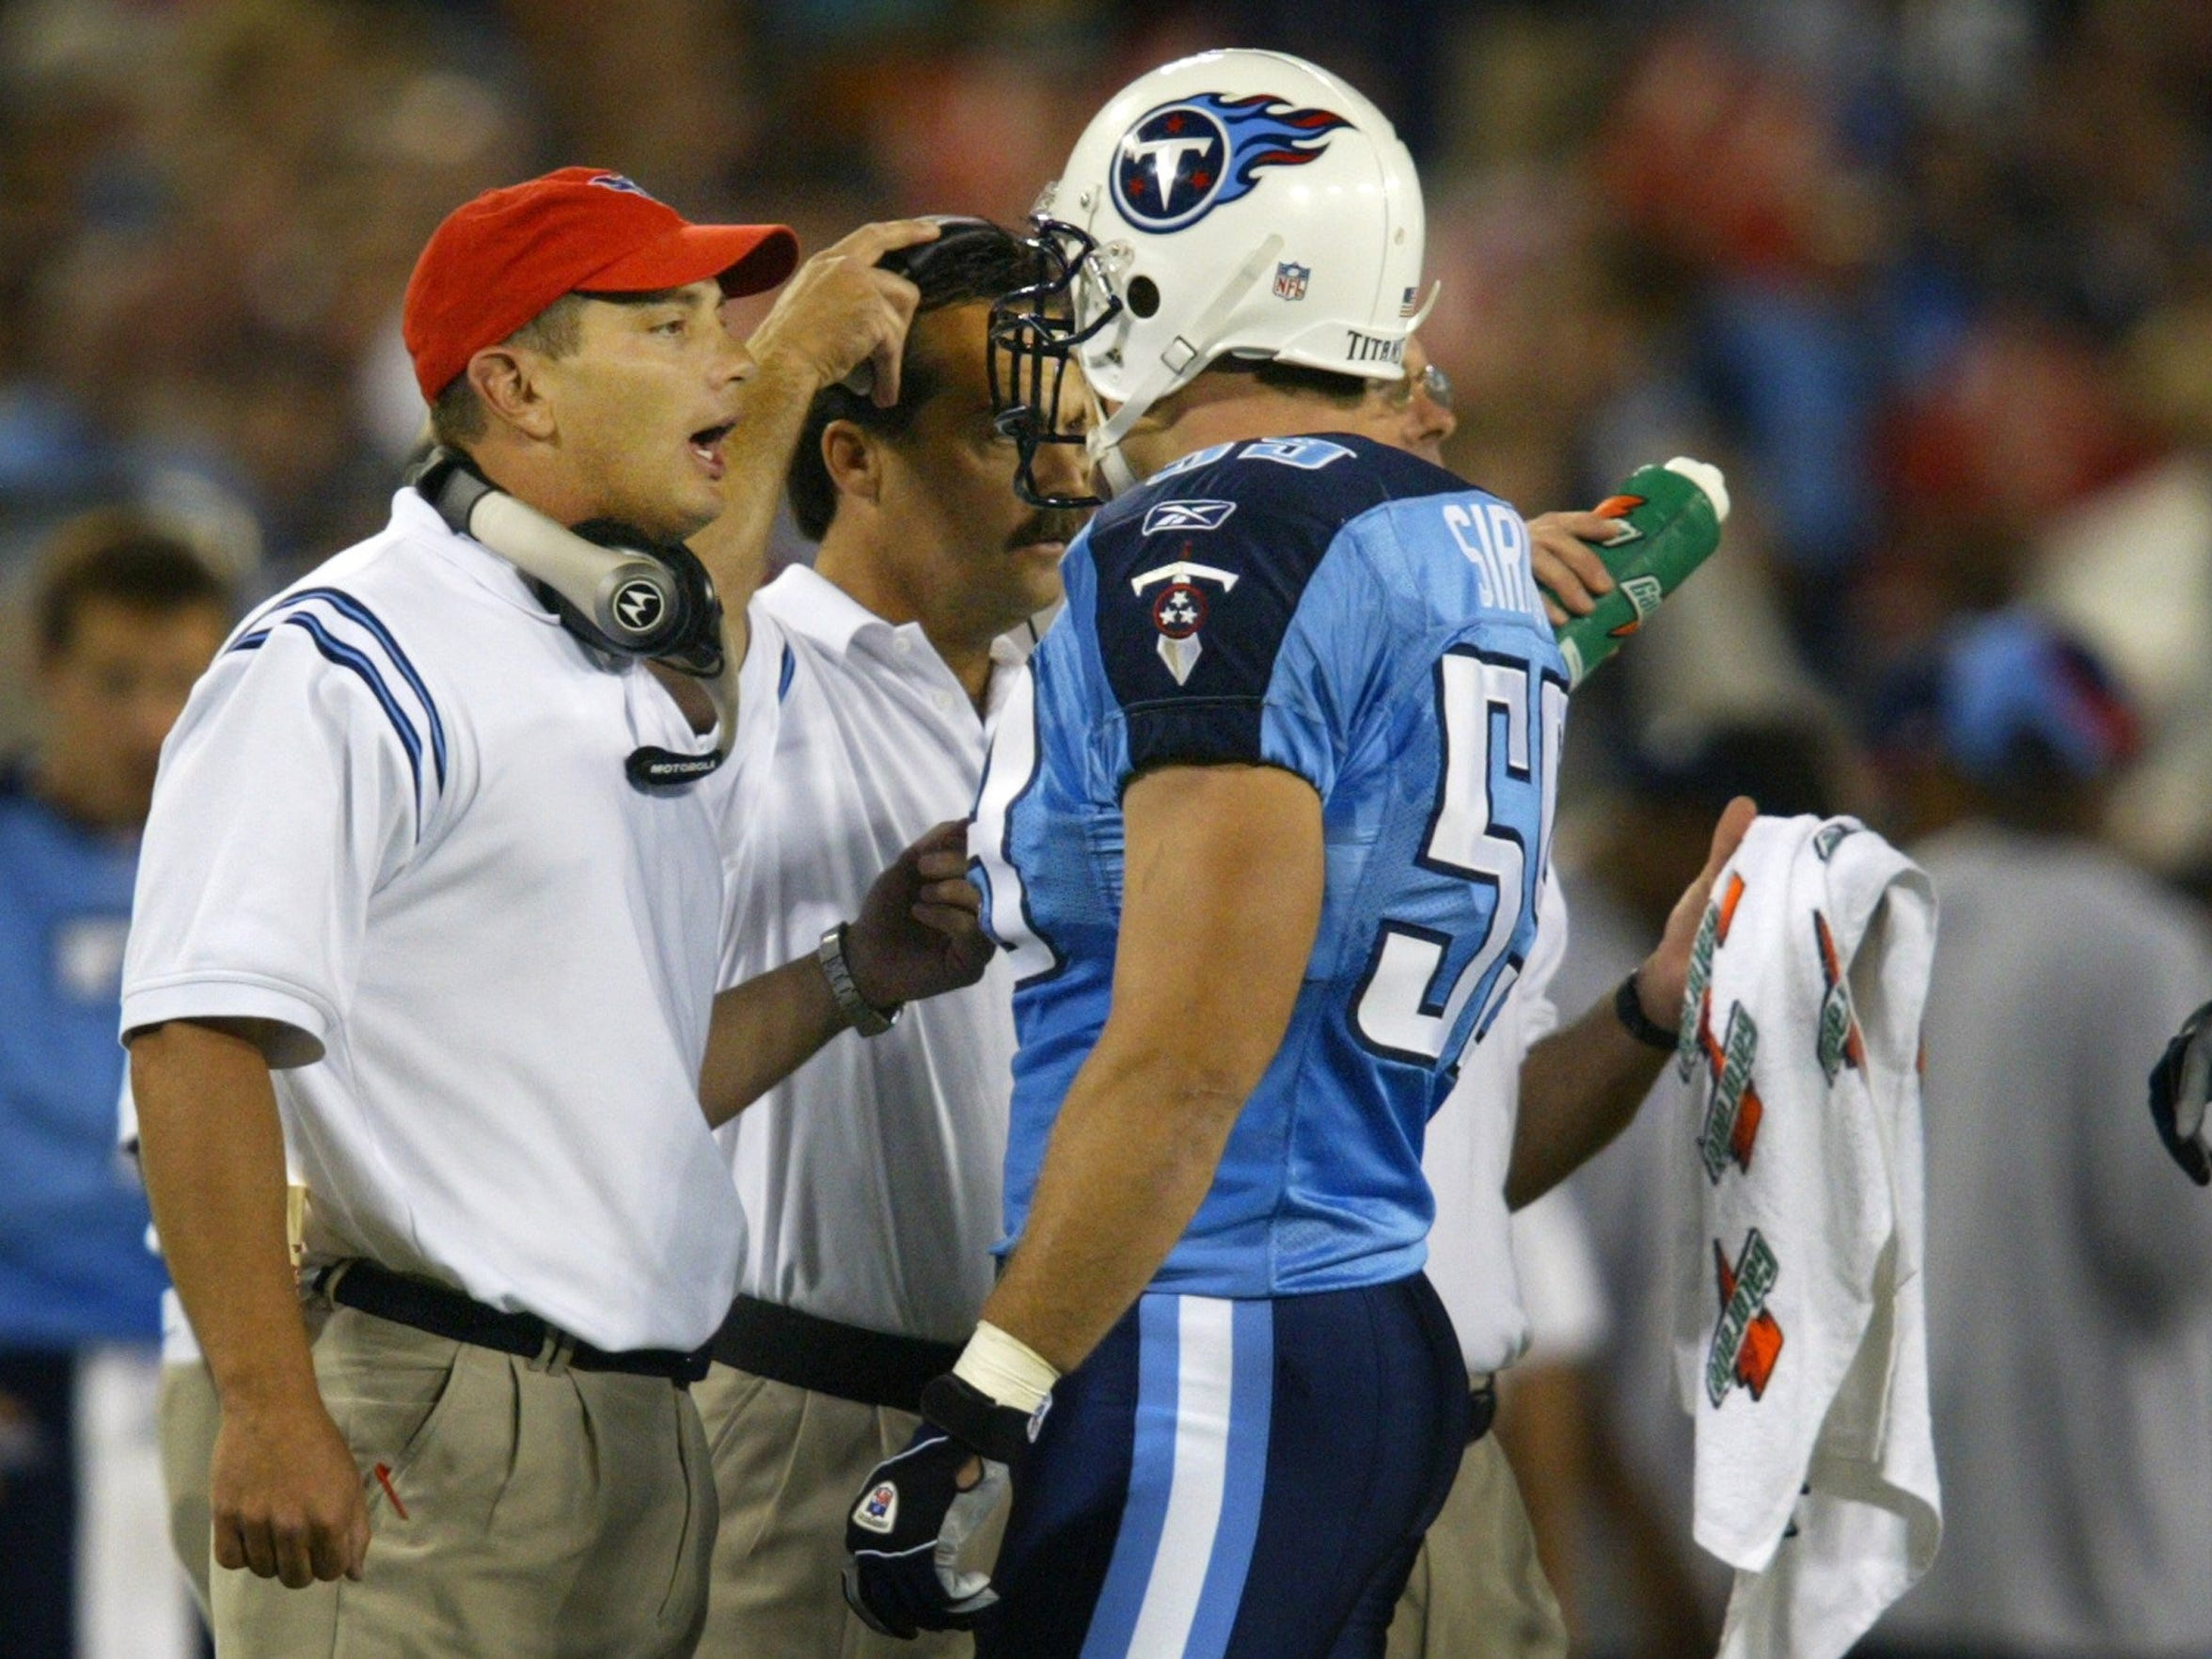 Peter Sirmon, right, developed a special bond with then-Titans defensive coordinator Jim Schwartz, impressing the coach with his love and knowledge of football.